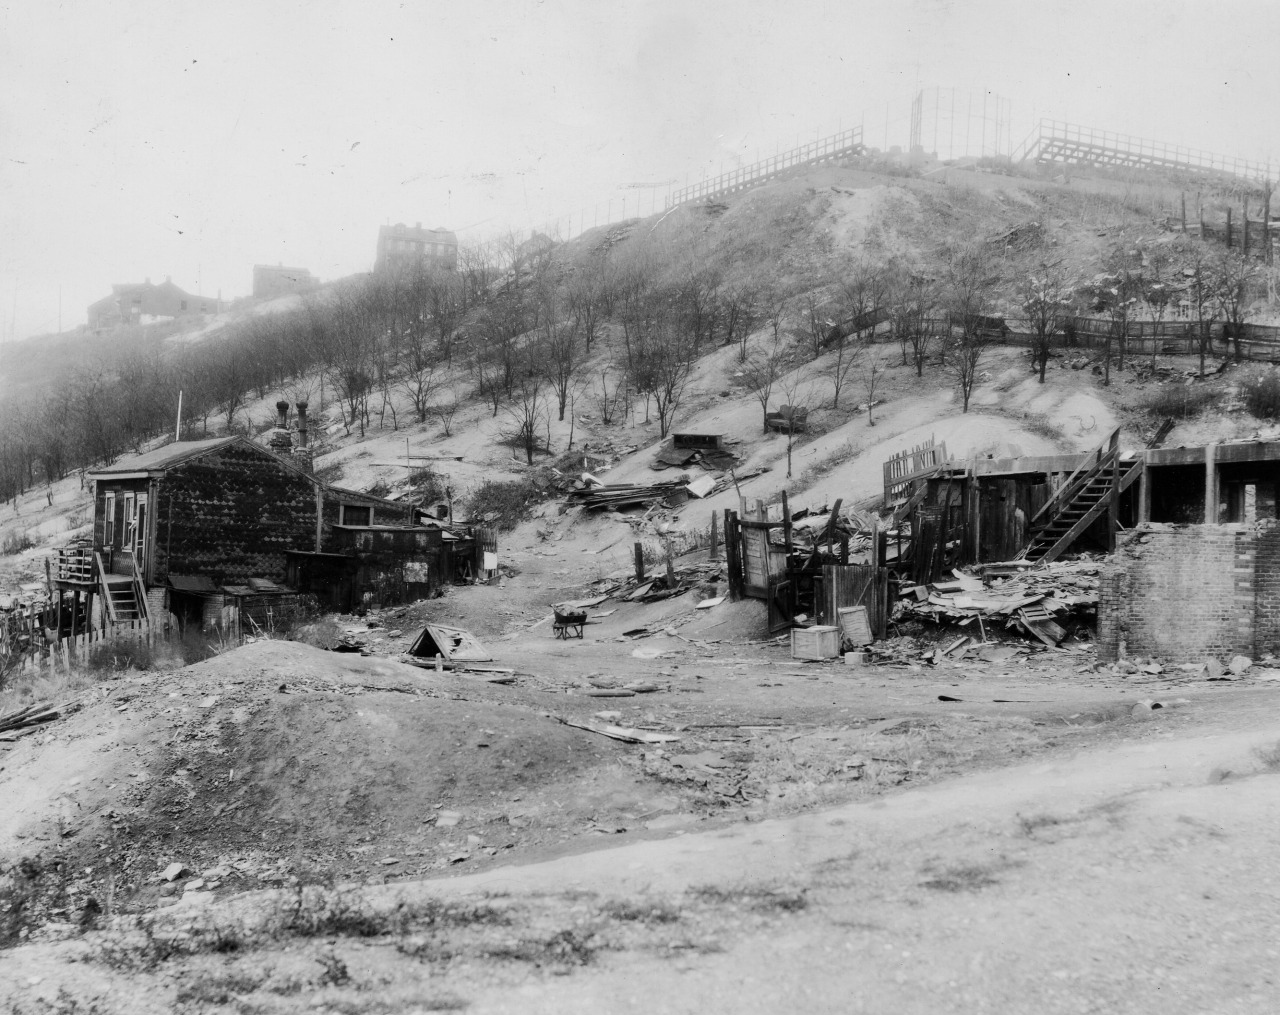 Late 1930s; Bedford Dwellings site under construction (Credit: Isaacs and Walsh, Inc.)